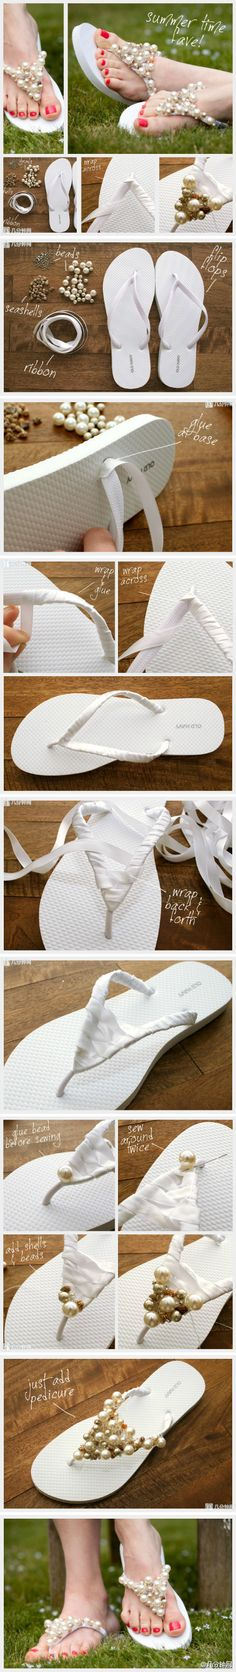 decorating flip-flops